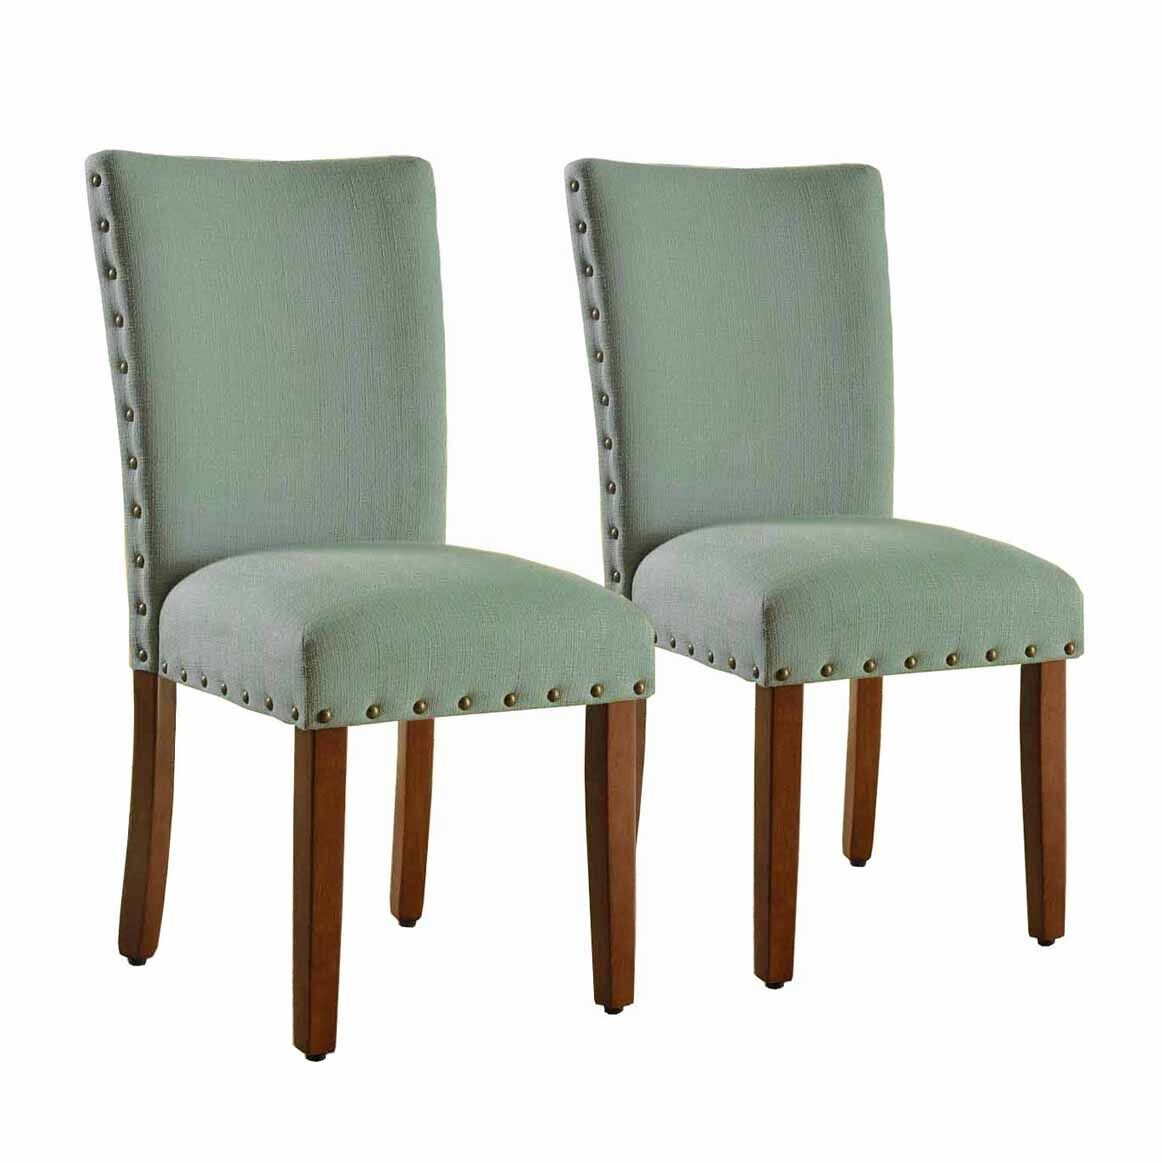 Sea Foam Set of 2 HomePop Parsons Classic Upholstered Accent Dining Chair with Nailheads, Set of 2, Sea Foam